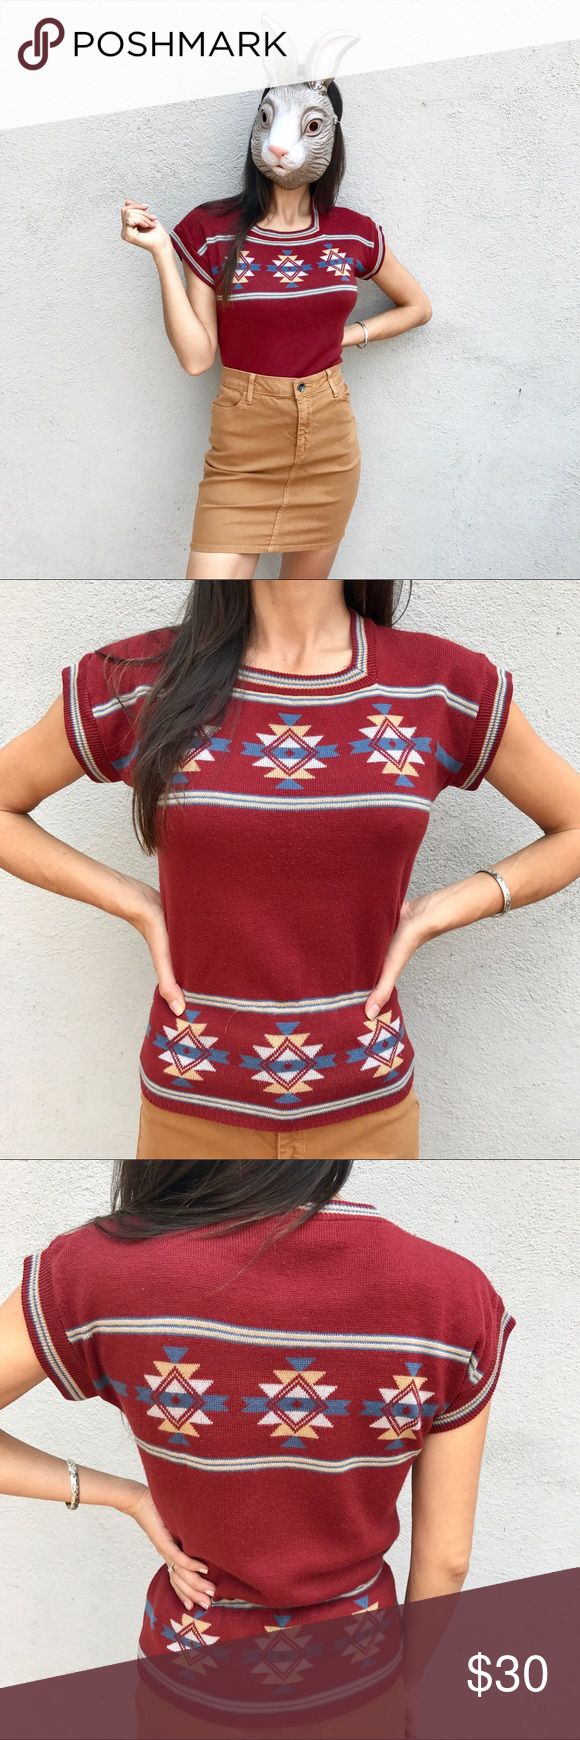 "Vintage Bullocks sweater top! VINTAGE Bullocks sweater top! Amazing piece! No size tags but would fit small/medium. Pit to pit 18"", length 23"". 100% acrylic. Some slight pilling as this is vintage. Skirt for sale in my shop, too! Vintage Tops"